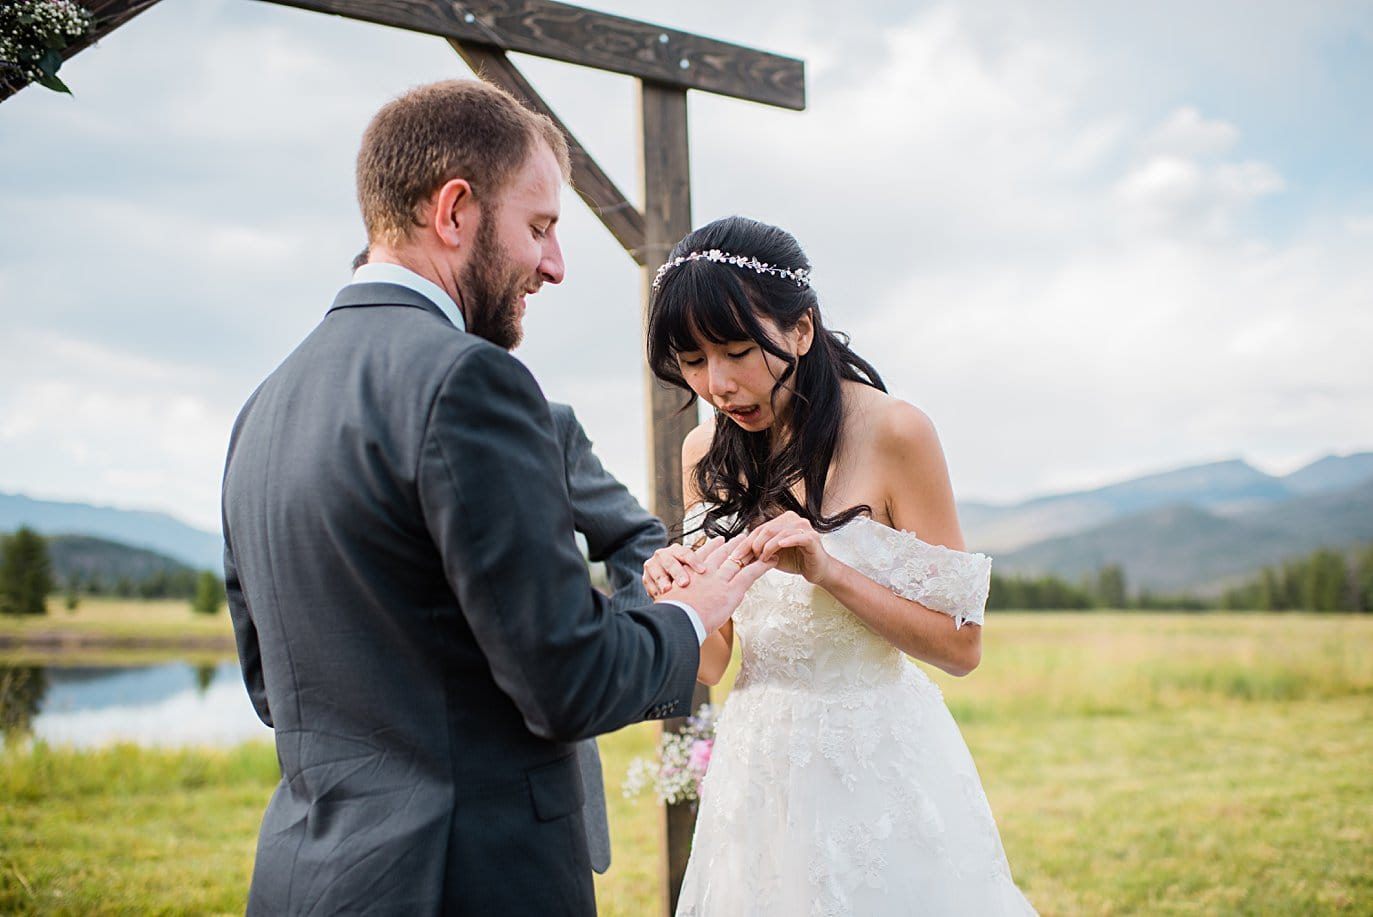 ring exchange in outdoor meadow ceremony at intimate Grand Lake wedding by Estes Park wedding photographer Jennie Crate